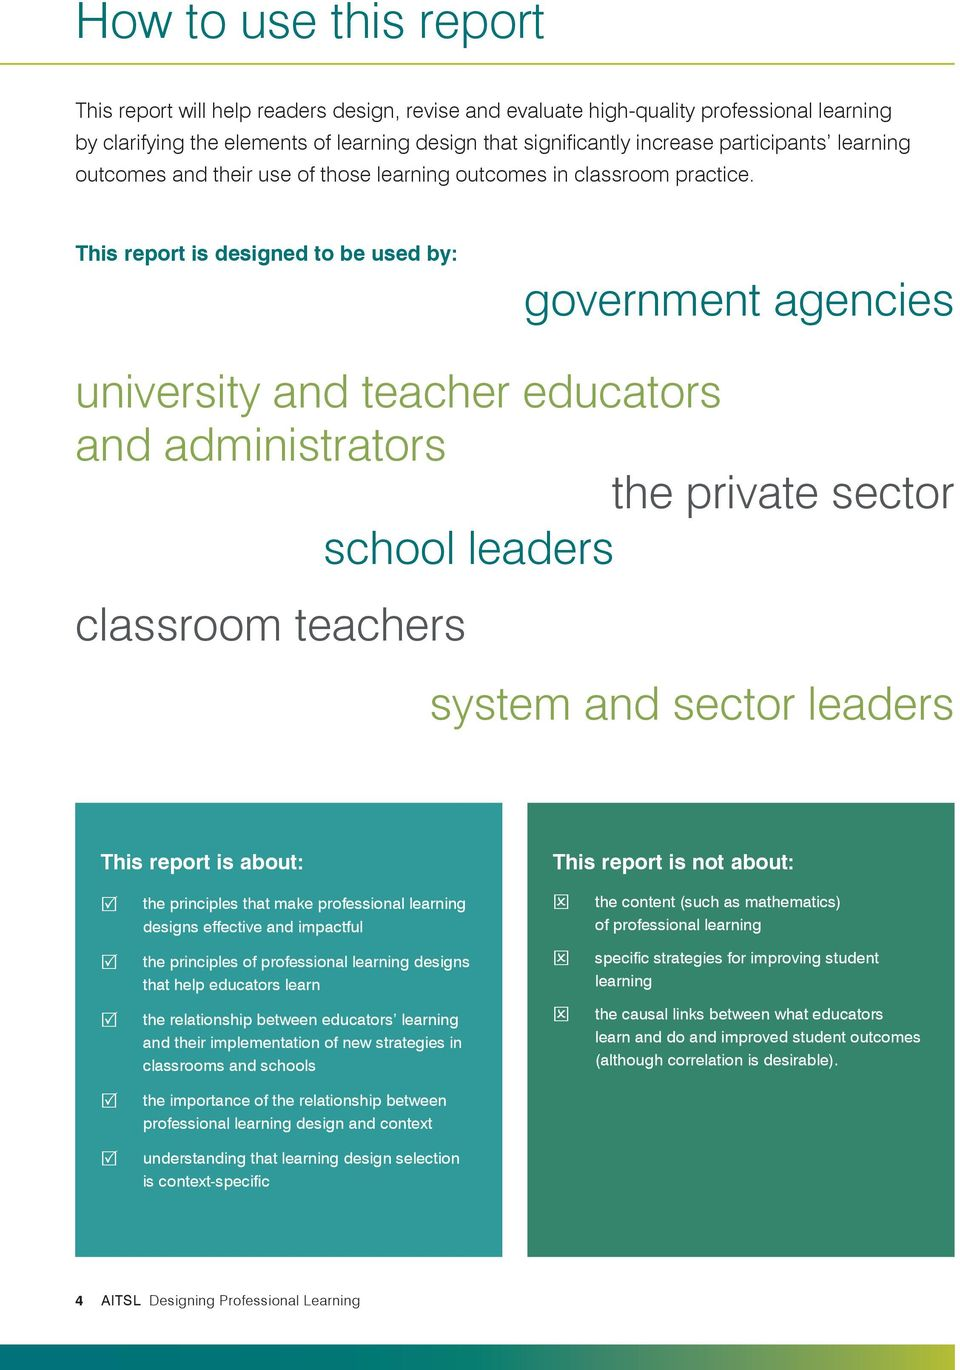 This report is designed to be used by: government agencies university and teacher educators and administrators the private sector school leaders classroom teachers system and sector leaders This